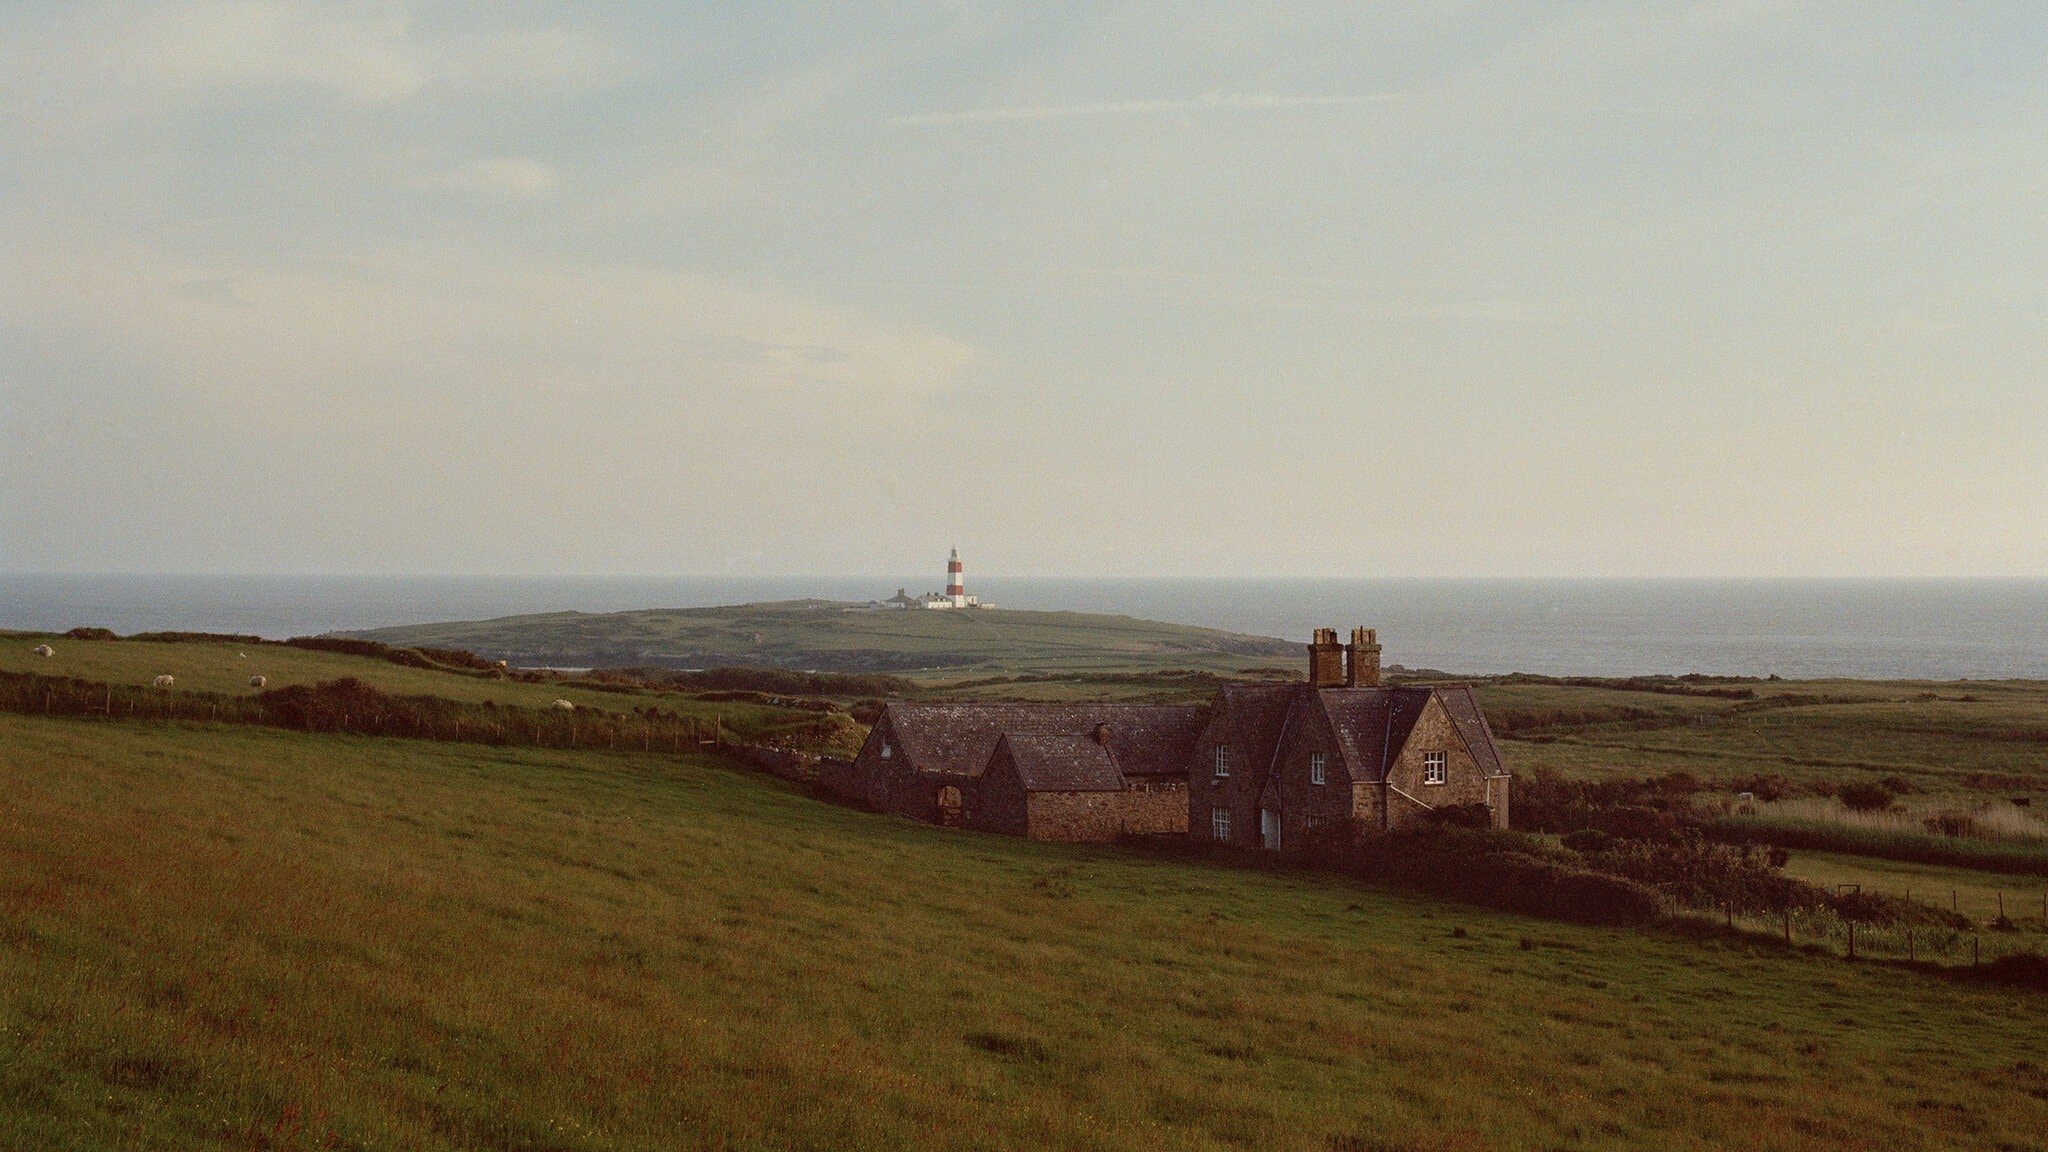 A lighthouse is visible in the distance; in the foreground, a home on an island